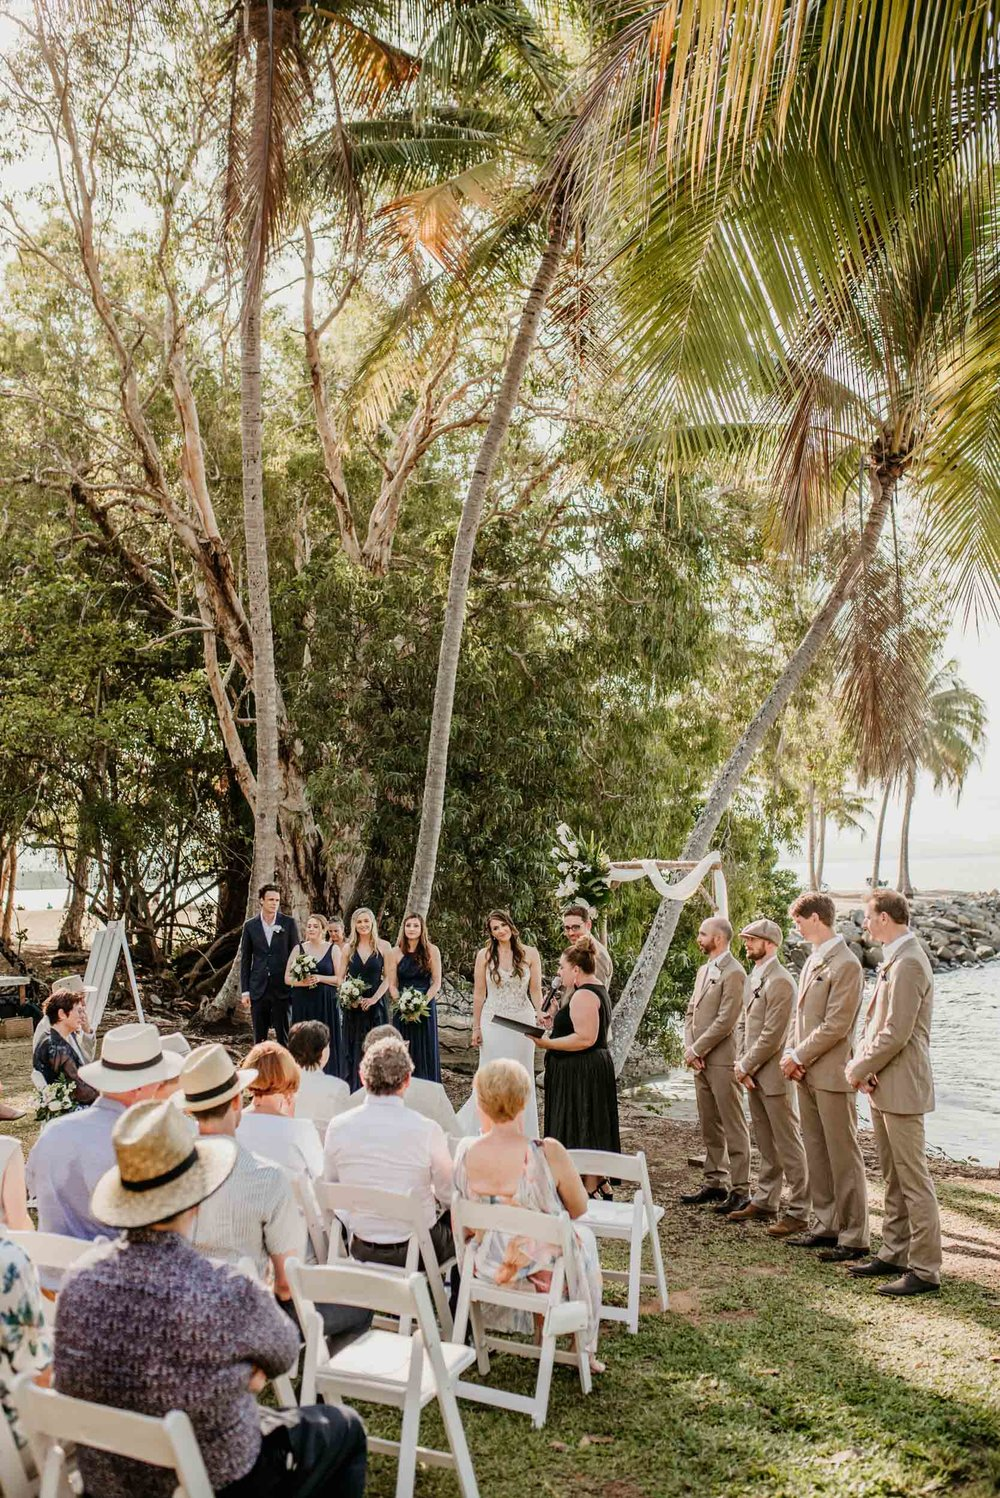 The Raw Photographer - Cairns Wedding Photographer - Sugar Wharf - Port Douglas Reception - Little Cove Ceremony-42.jpg